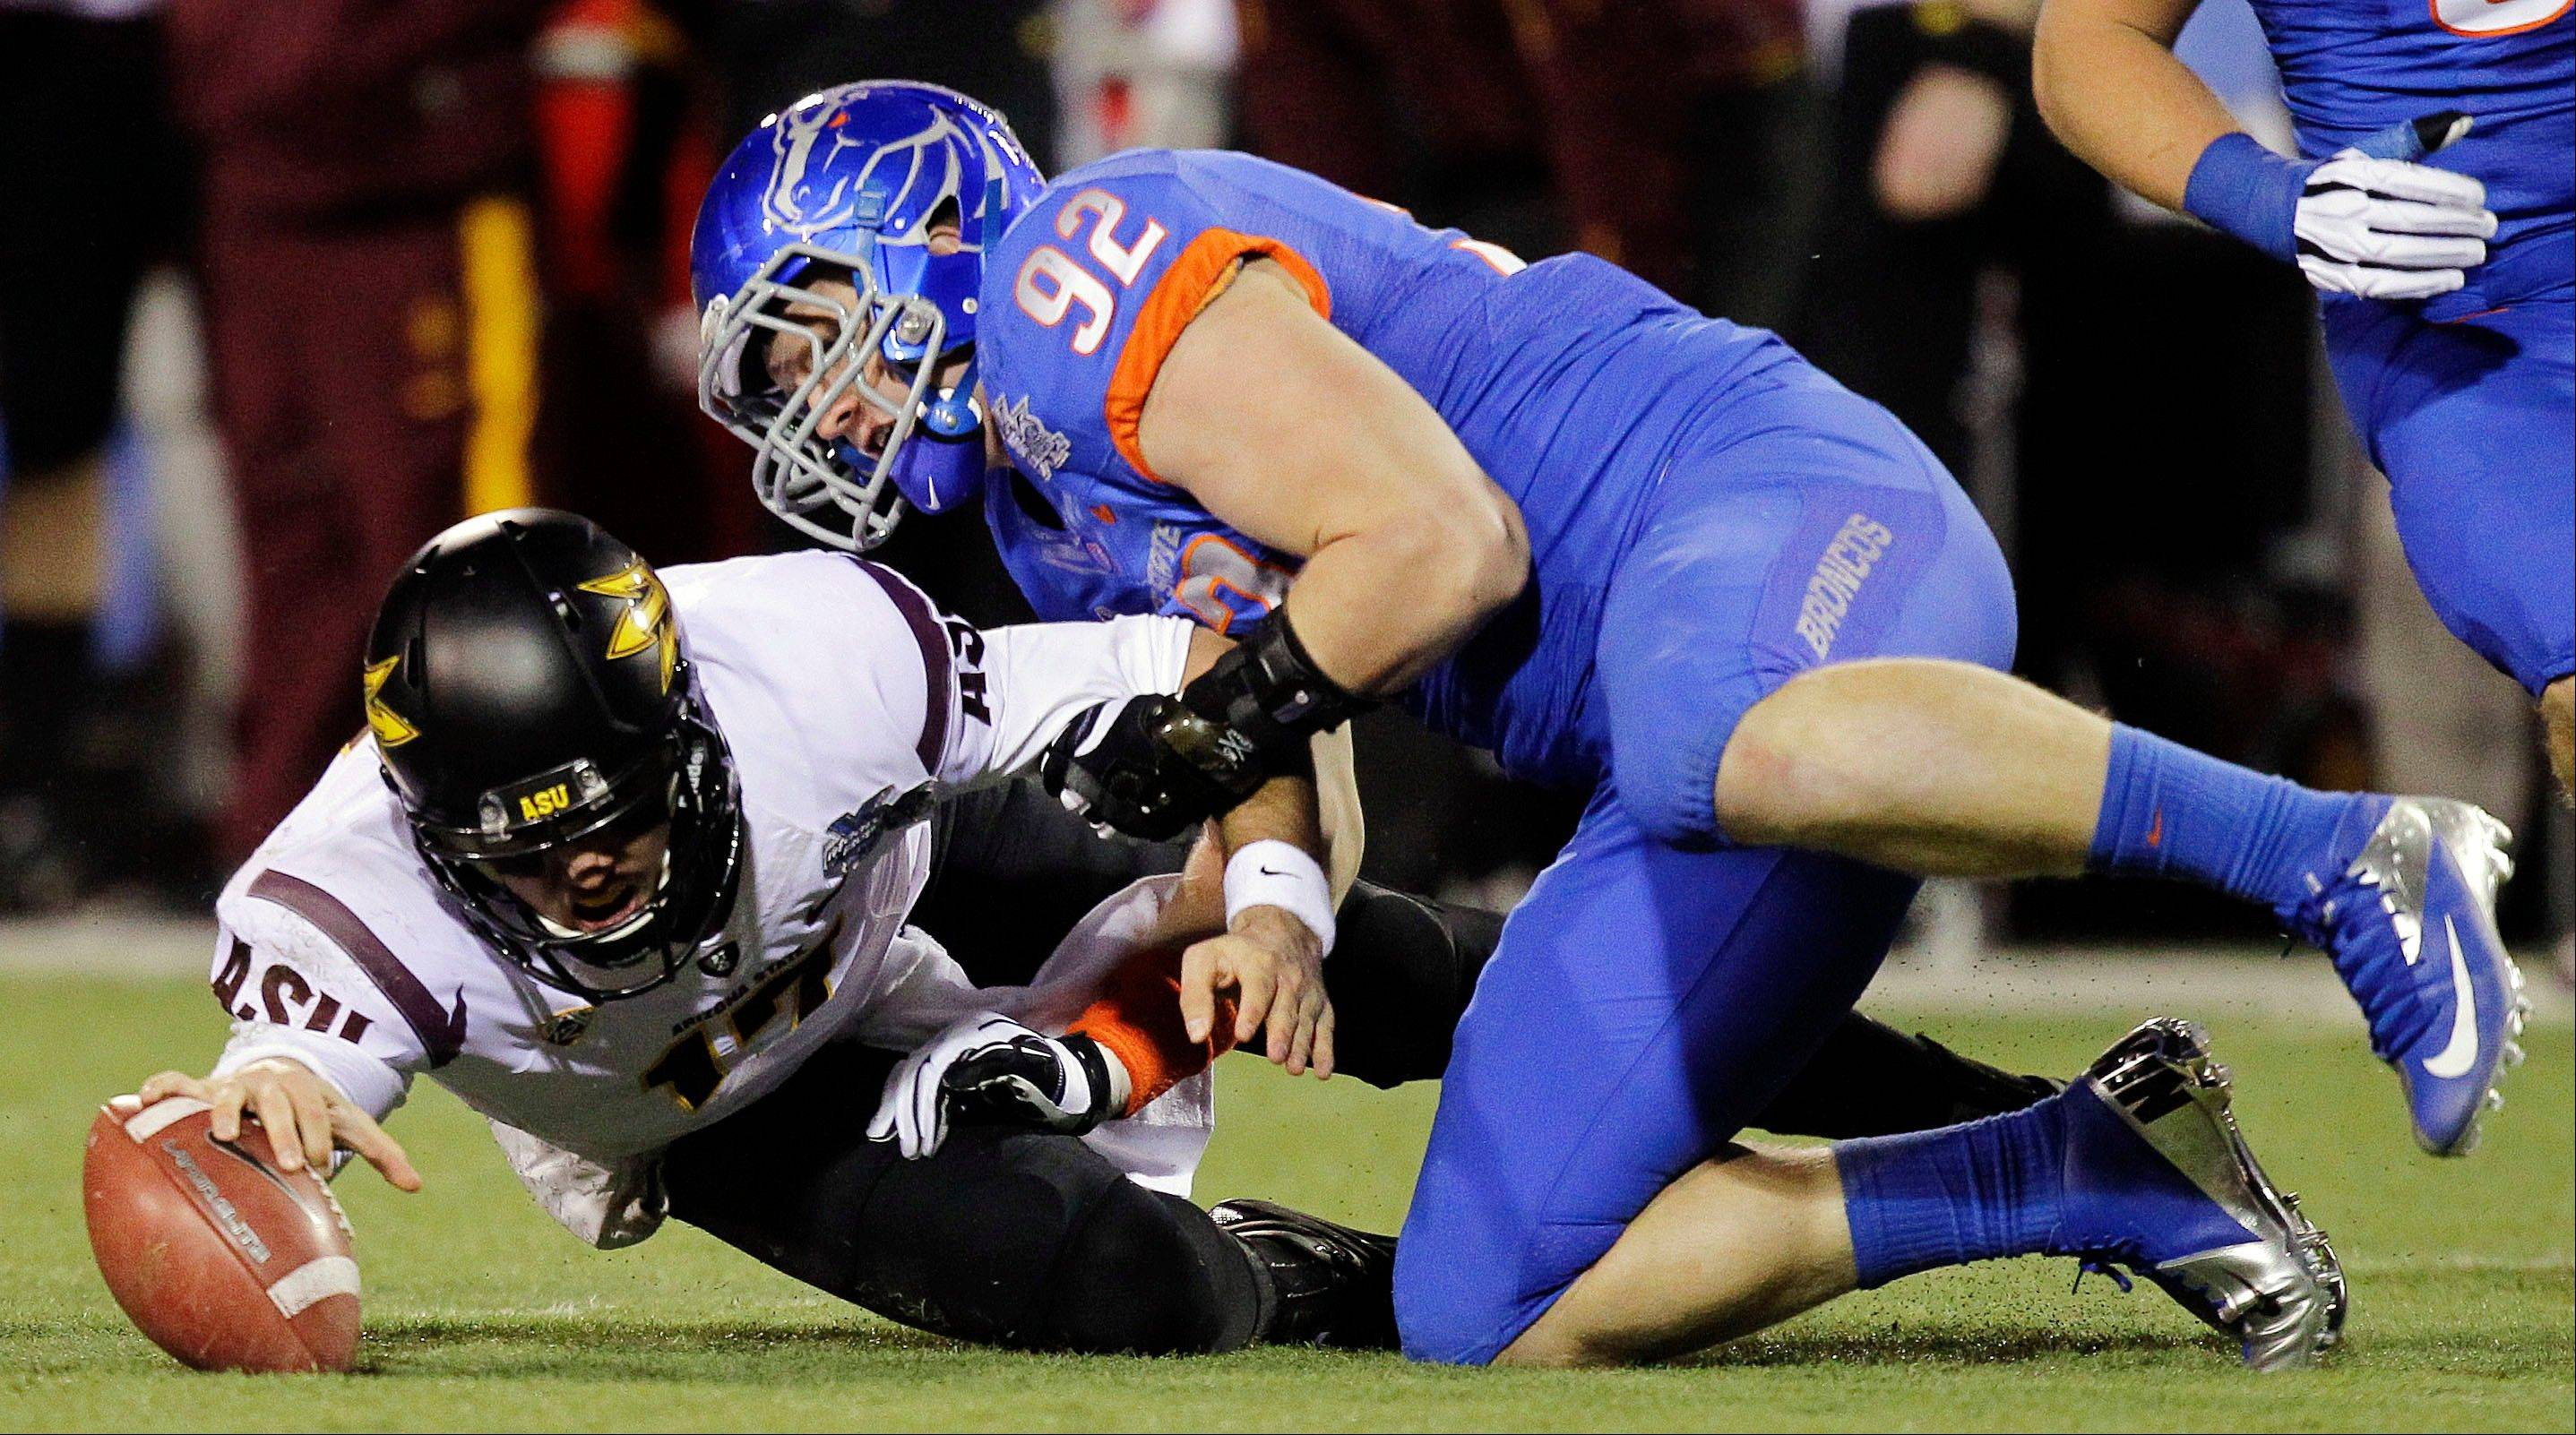 FILE - In this Dec. 22, 2011, file photo, Arizona State quarterback Brock Osweiler (17) reaches for the ball after a bad snap as Boise State defensive end Shea McClellin (92) defends in the first half of the Maaco Bowl NCAA college football game in Las Vegas. McClellin was selected 19th overall by the Chicago Bears in the first round of the NFL football draft at Radio City Music Hall, Thursday, April 26, 2012, in New York.